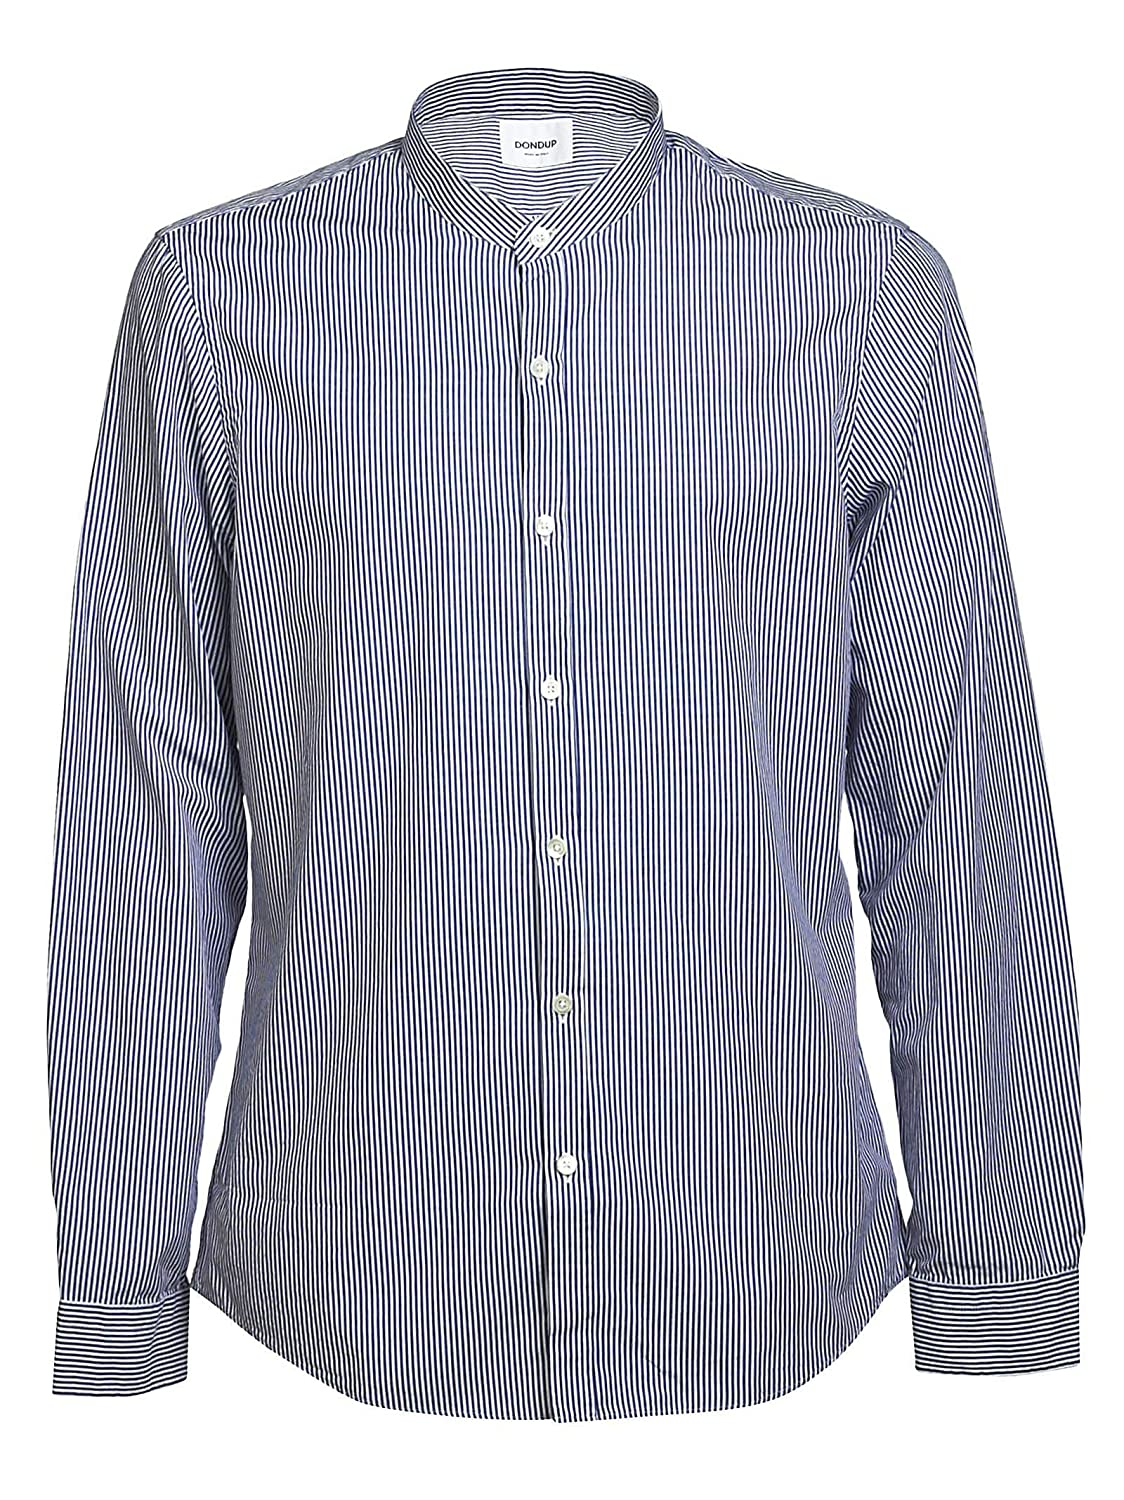 Spring Summer 19 Dondup Luxury Fashion Mens UC207EF049U002810 Light Blue Shirt